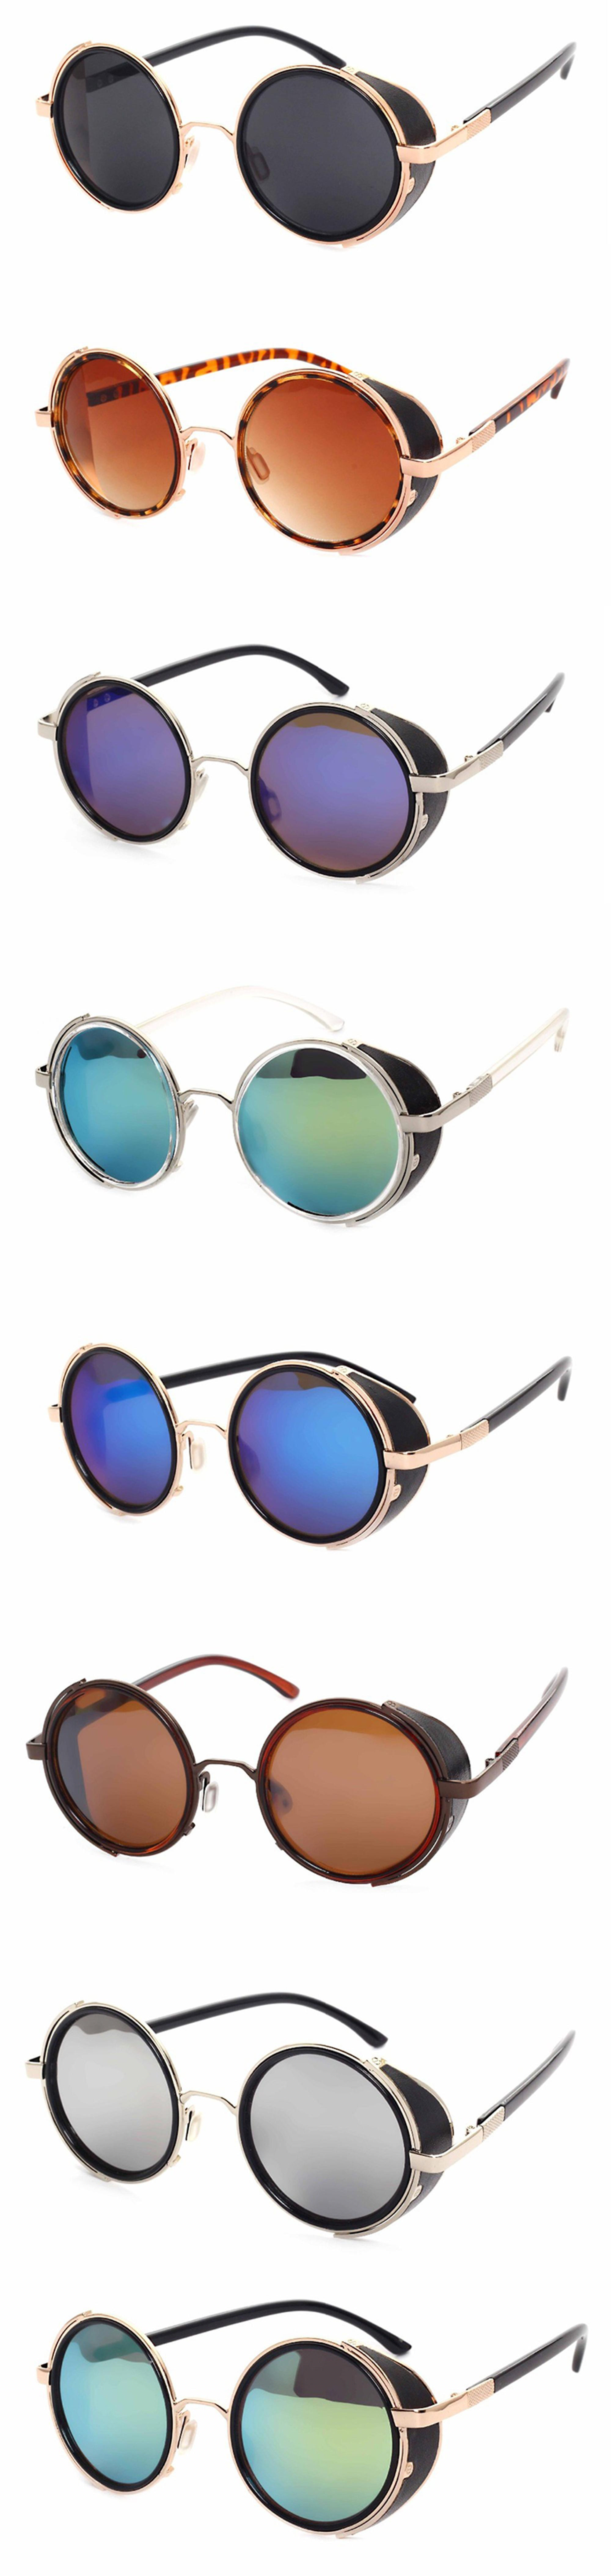 high quality stylish popular men women's metal round sunglasses fashion steampunk vintage style glass lenssunglasses